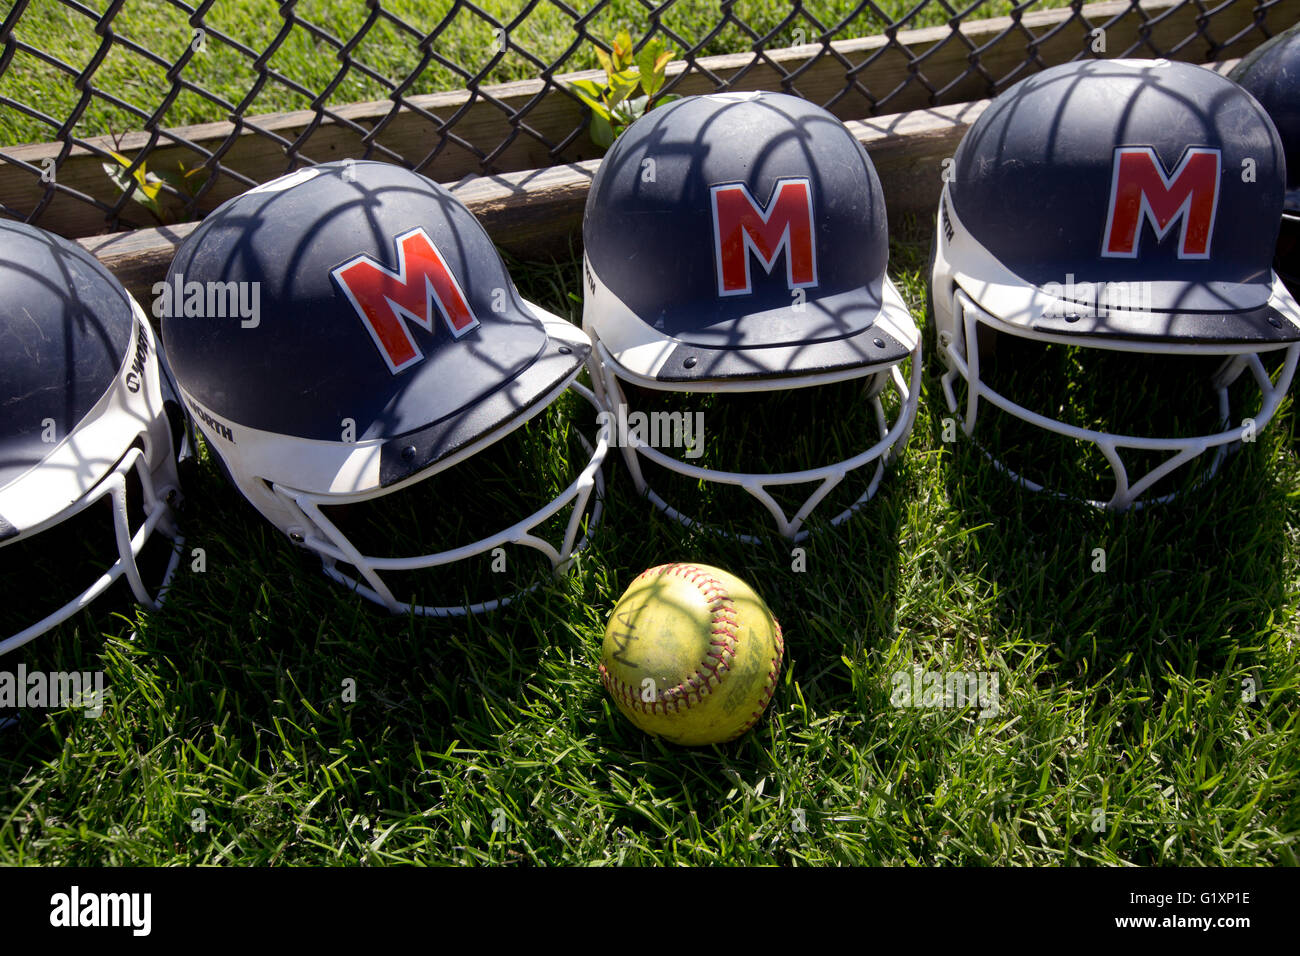 High School girls softball batting helmets Photo Stock